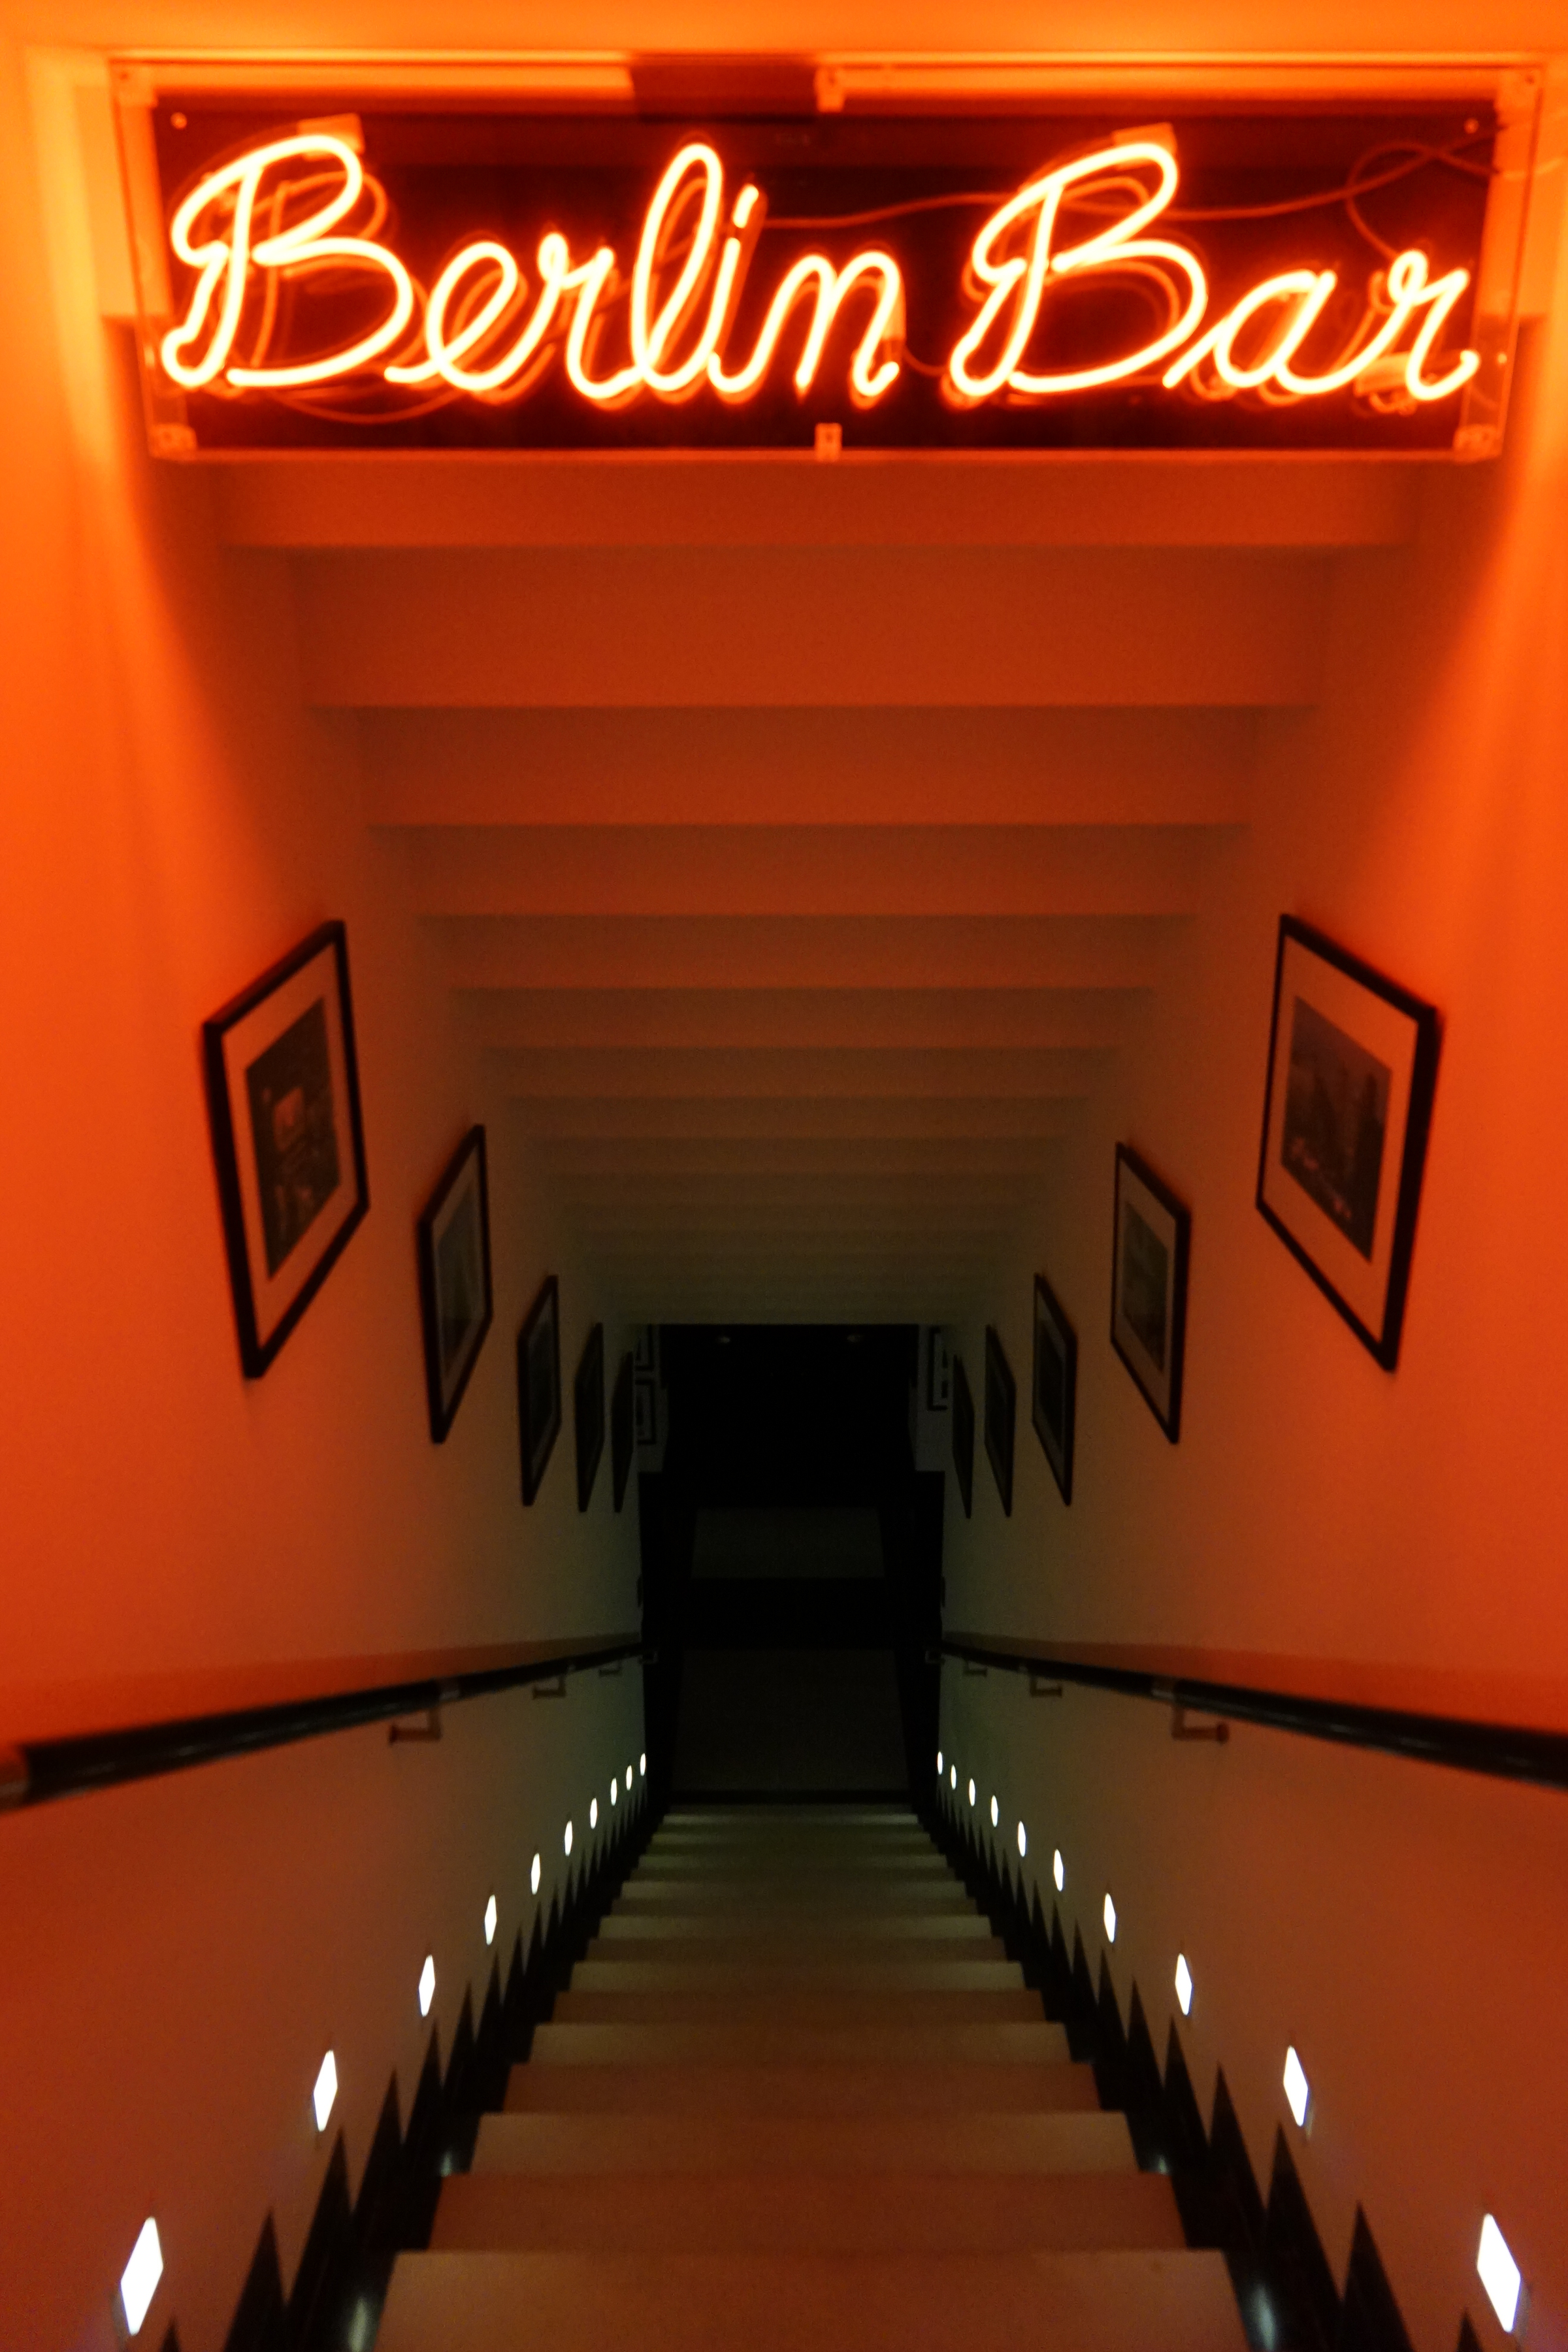 Image of a staircase with Berlin Bar in neon letters on the ceiling